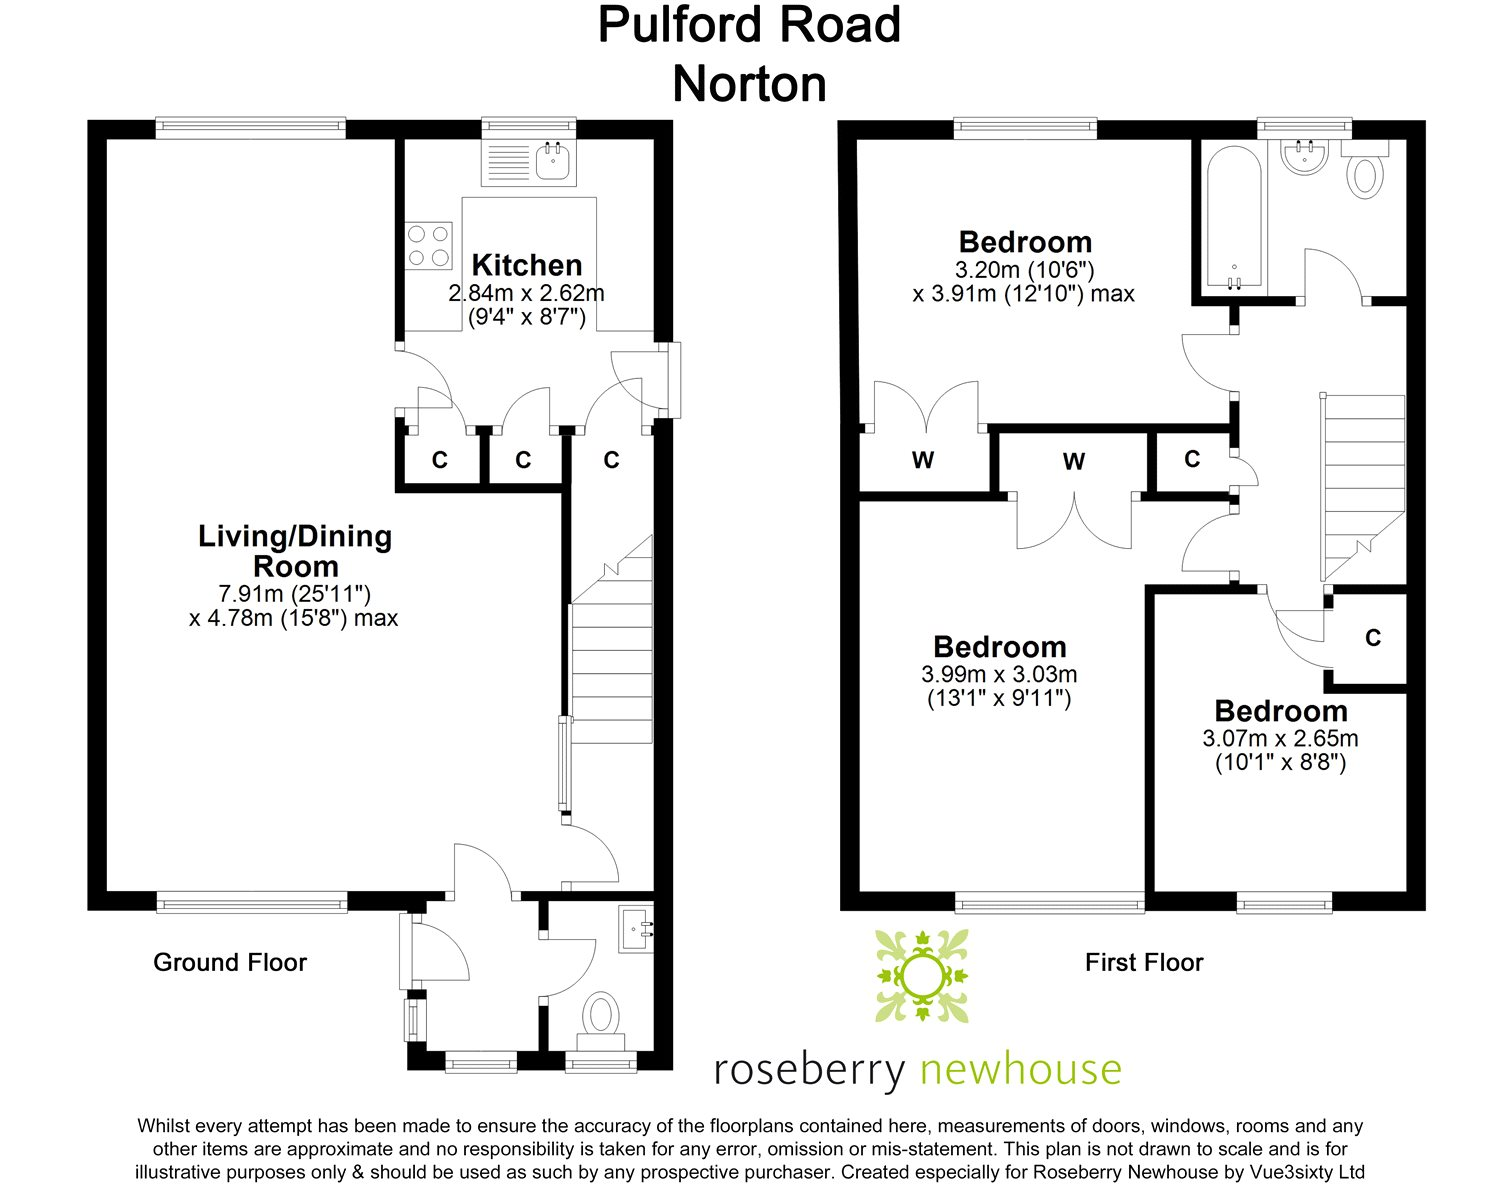 Property For Sale Pulford Road Norton